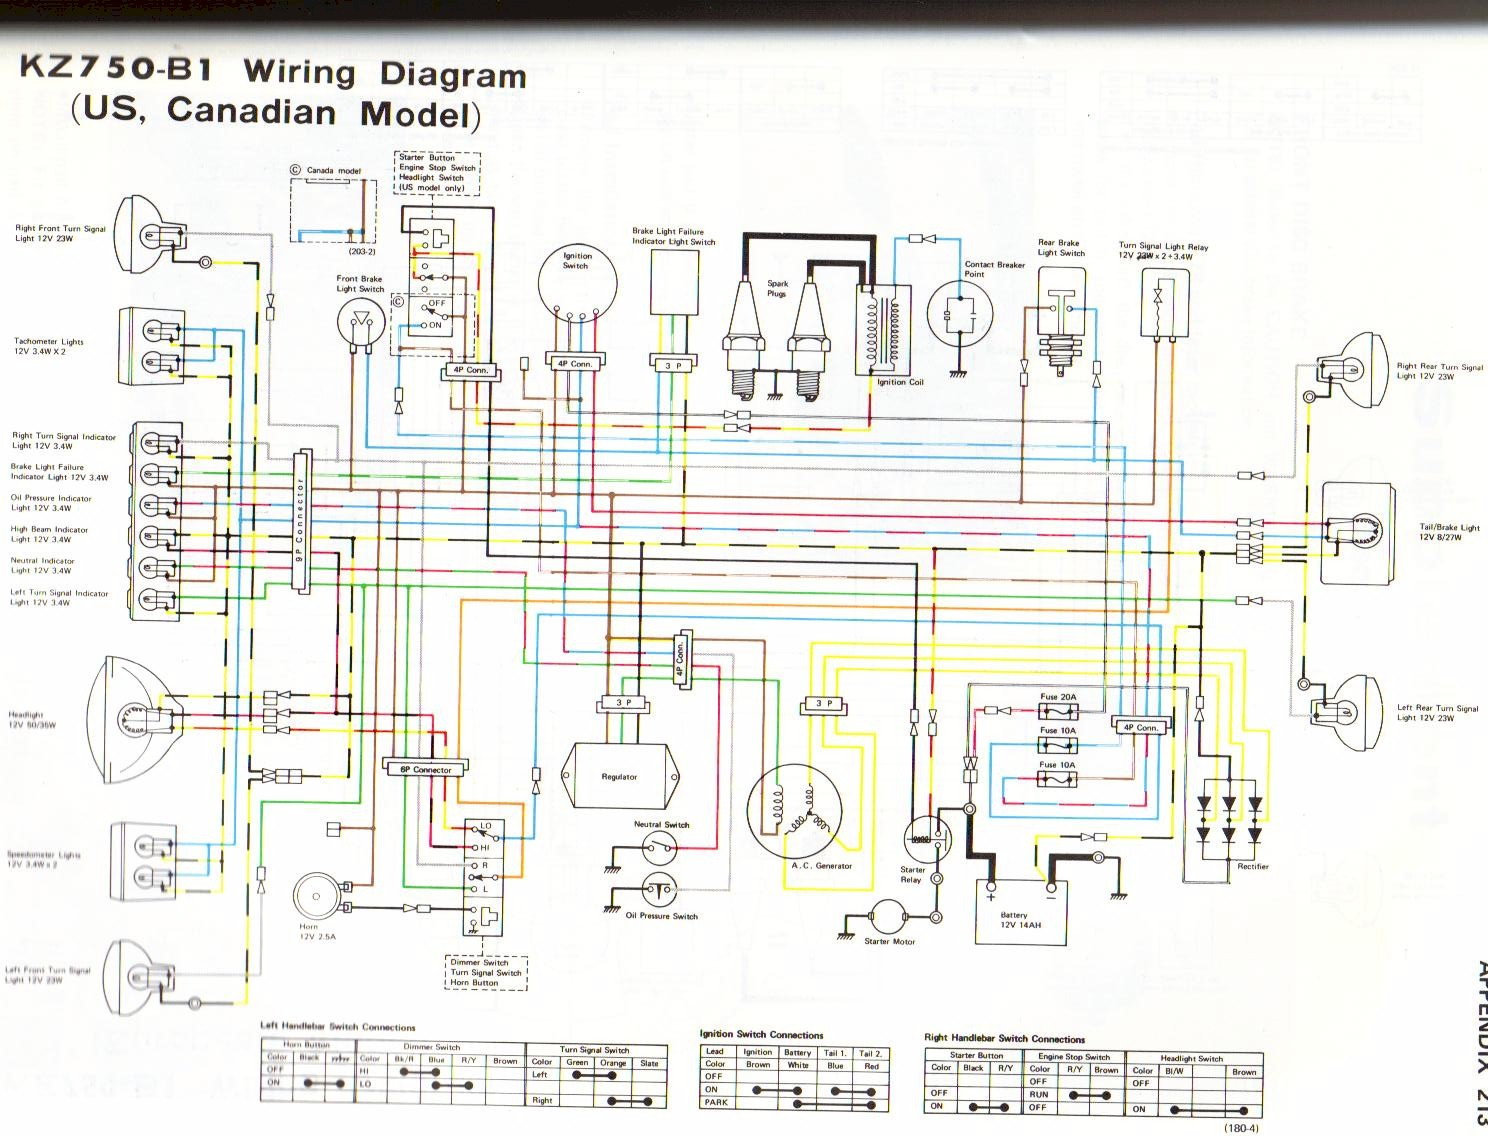 Zx600 Wiring Diagram Enthusiast Diagrams Vn1500 Example Electrical 1980 Kz750 G1 Trusted U2022 Rh Soulmatestyle Co Simple 3